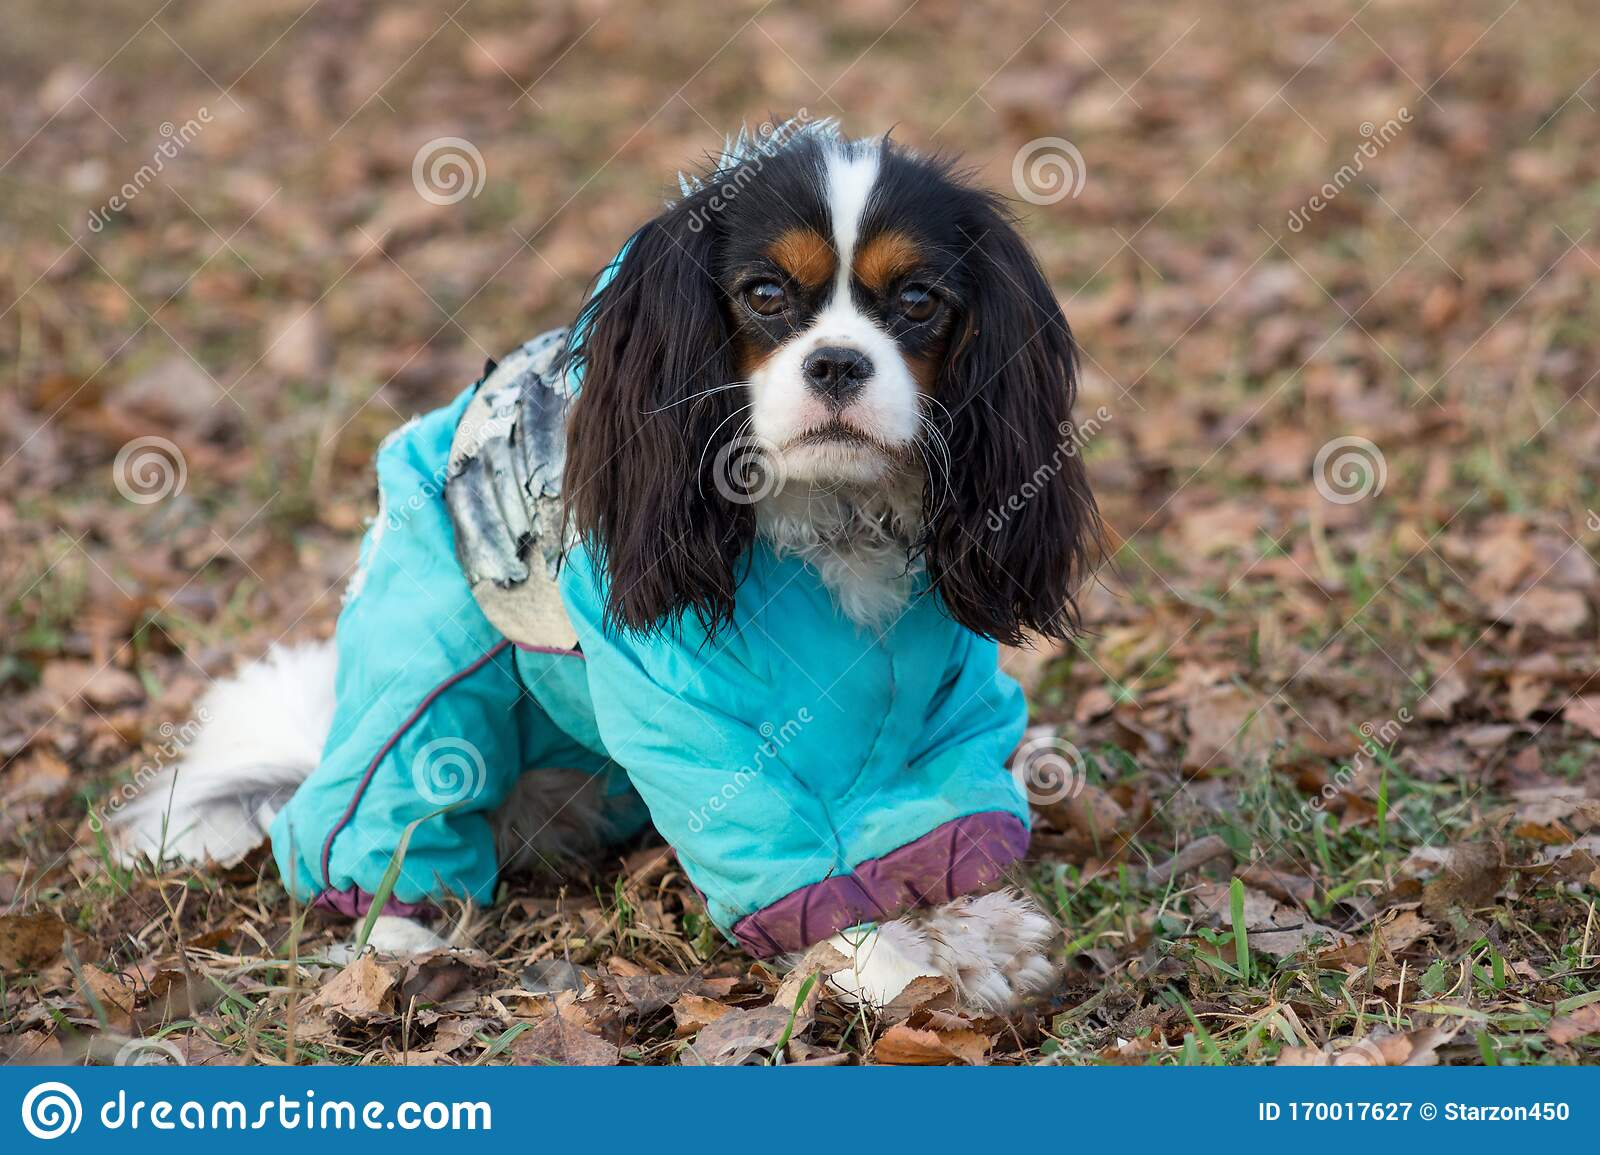 Cute Cavalier King Charles Spaniel In The Beautiful Pet Clothes Is Sitting In The Autumn Park Pet Animals Stock Image Image Of Foliage Brown 170017627